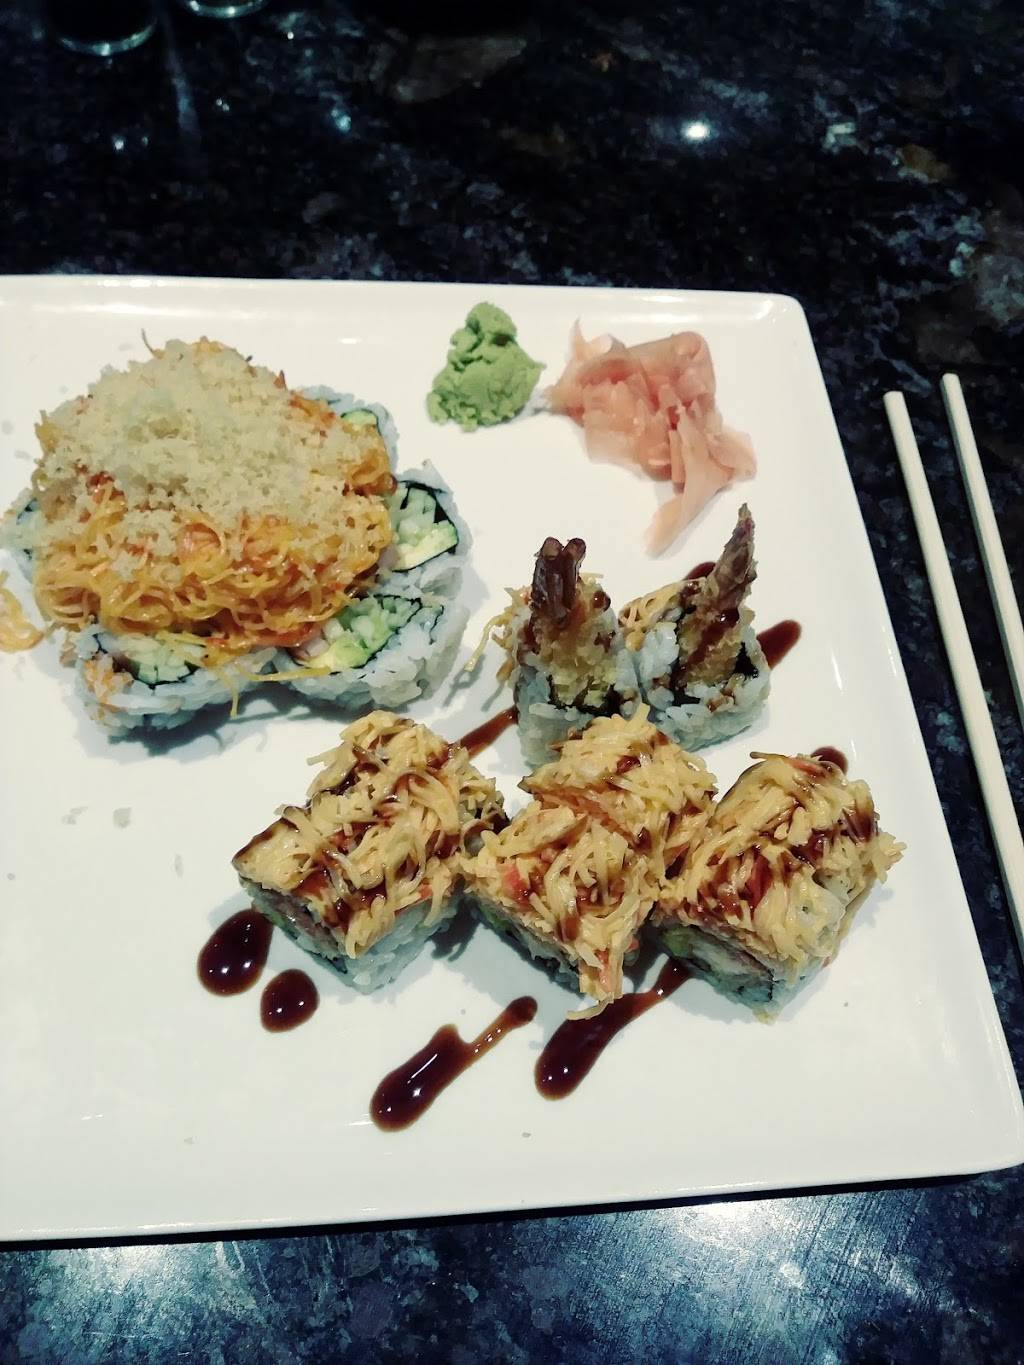 Sake House | restaurant | Suite 207 13505, 3730 Icot Blvd, Clearwater, FL 33760, USA | 7276149796 OR +1 727-614-9796